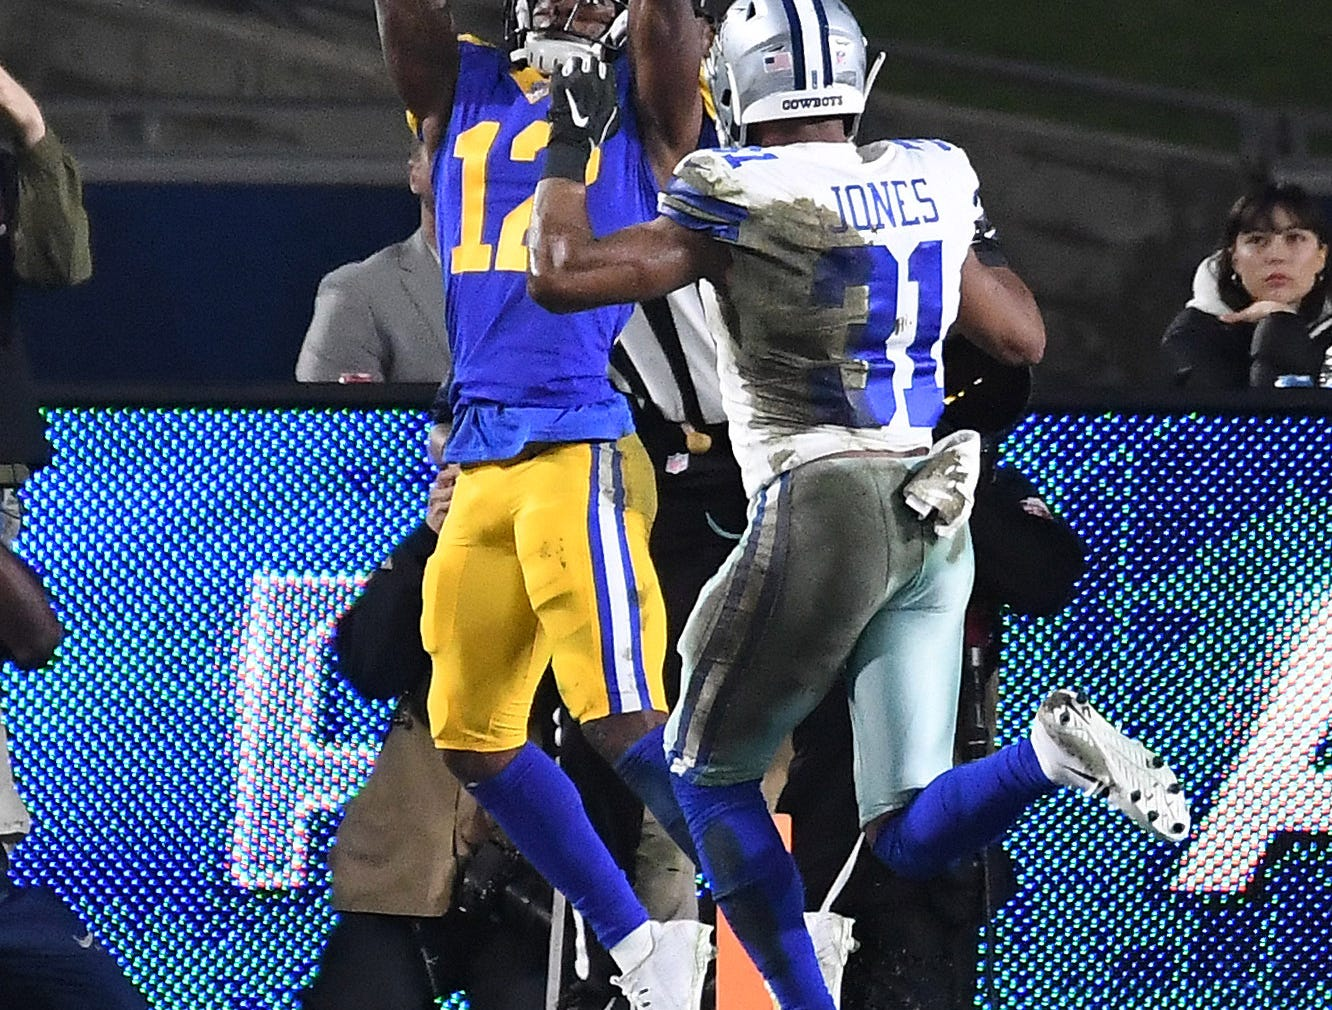 Los Angeles Rams wide receiver Brandin Cooks (12) makes a catch against the Dallas Cowboys in the first half at the Los Angeles Memorial Coliseum.